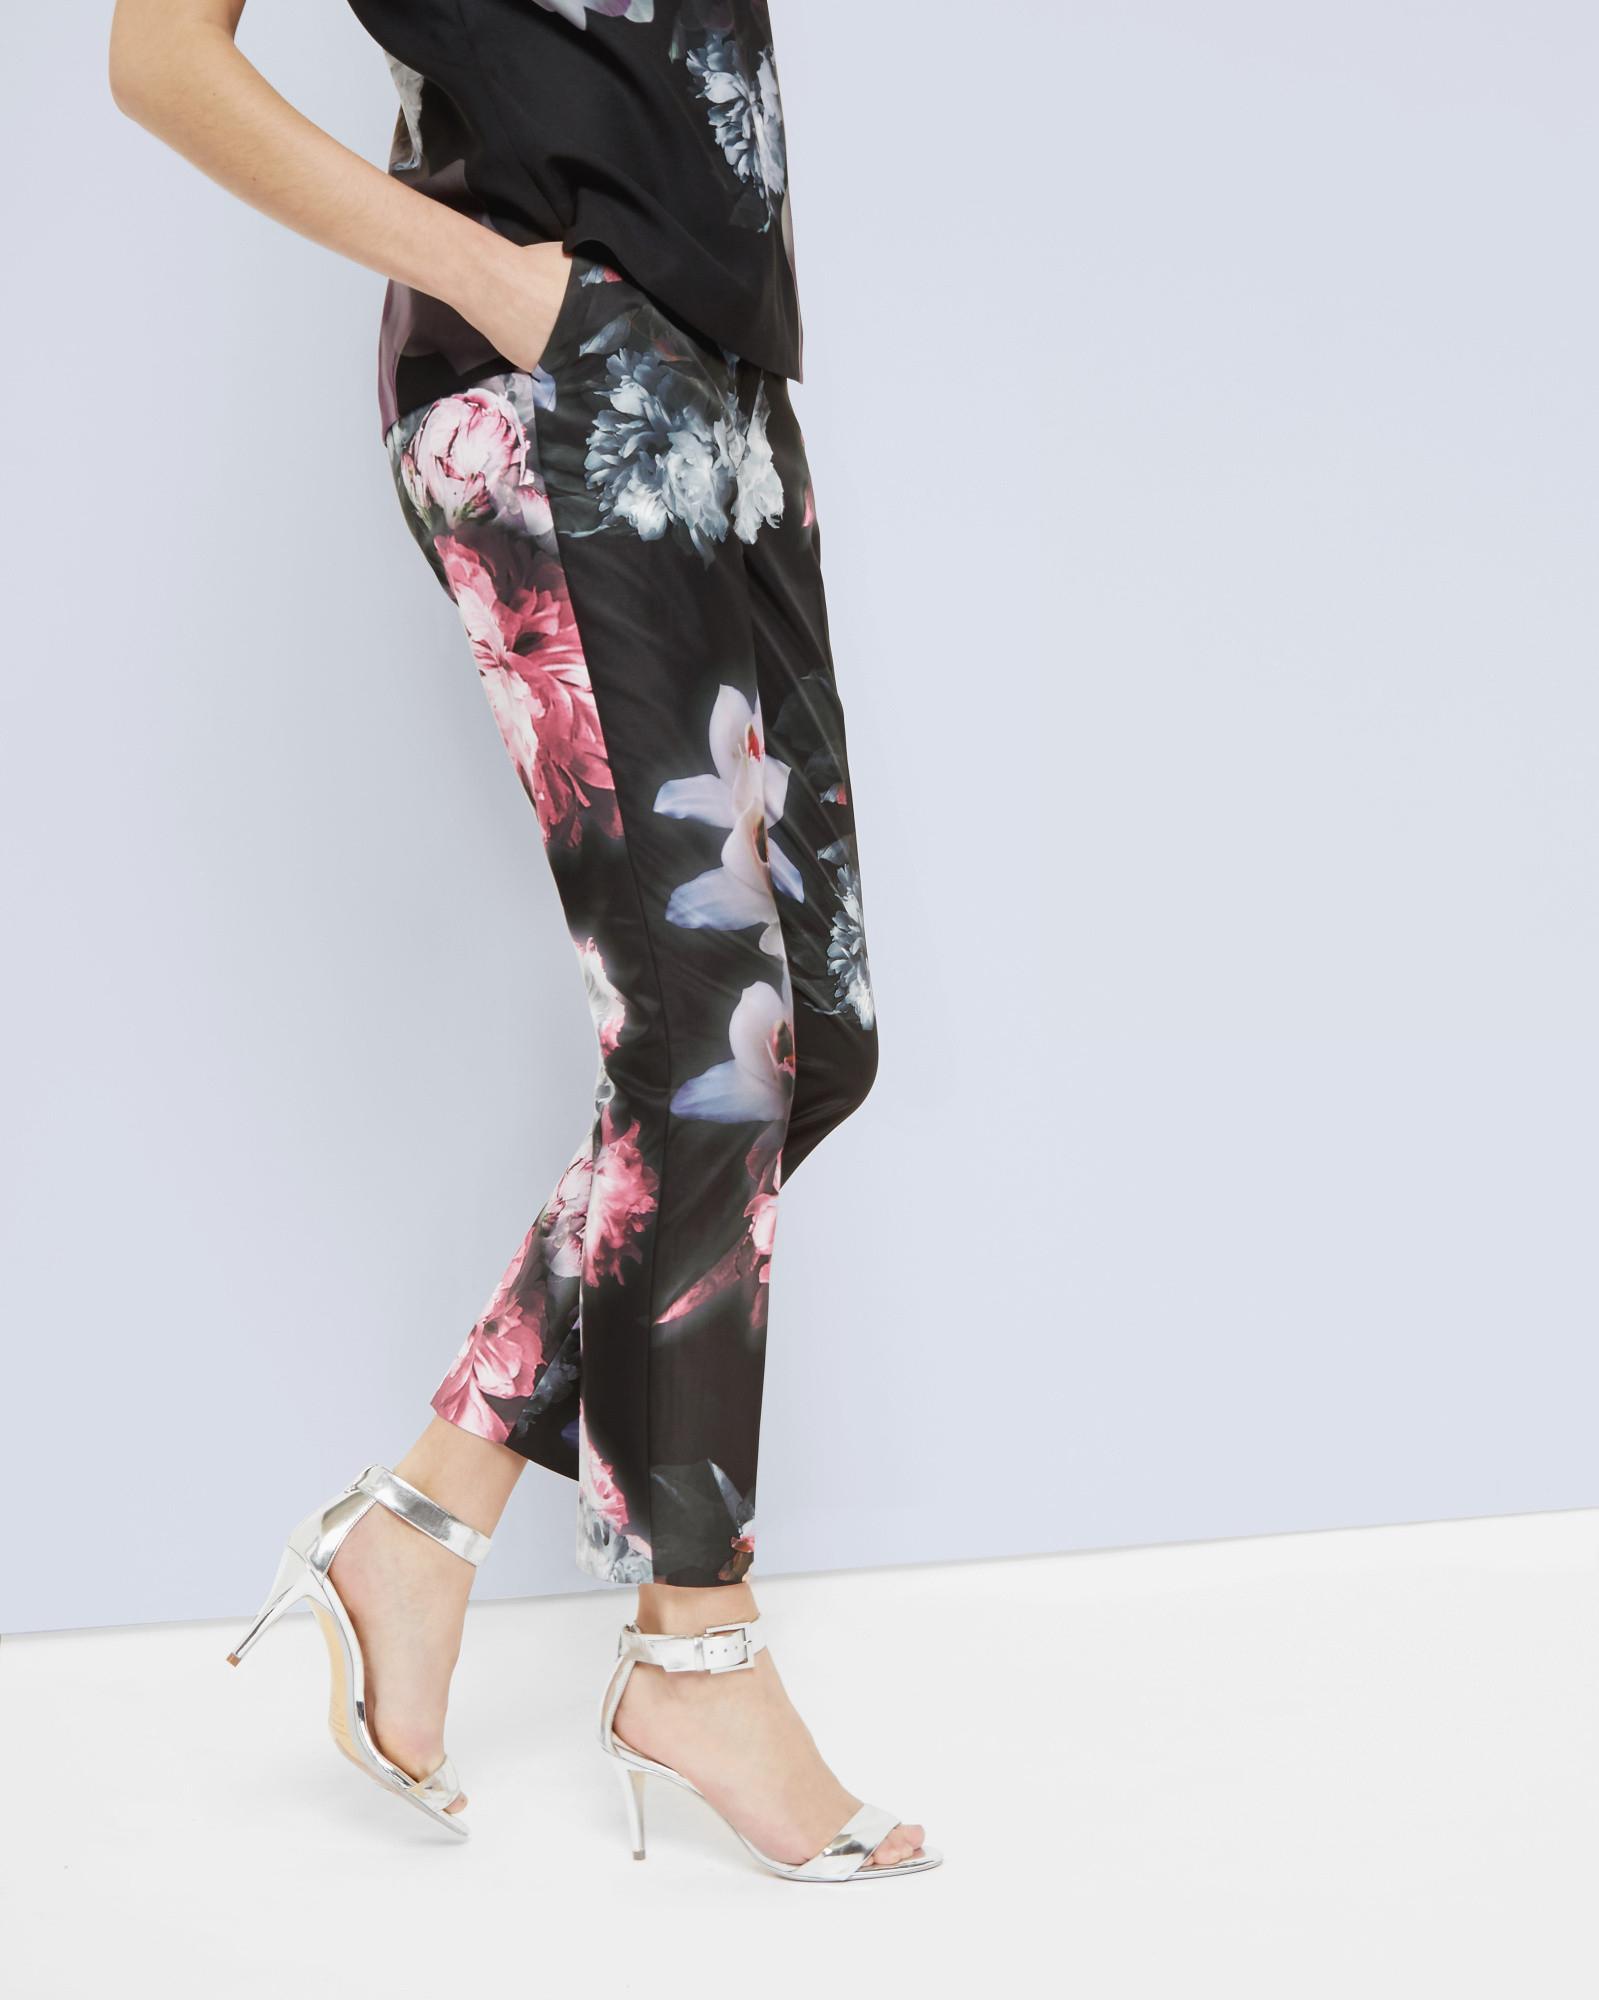 872361fcb Lyst - Ted Baker Ethereal Posie Trousers in Black